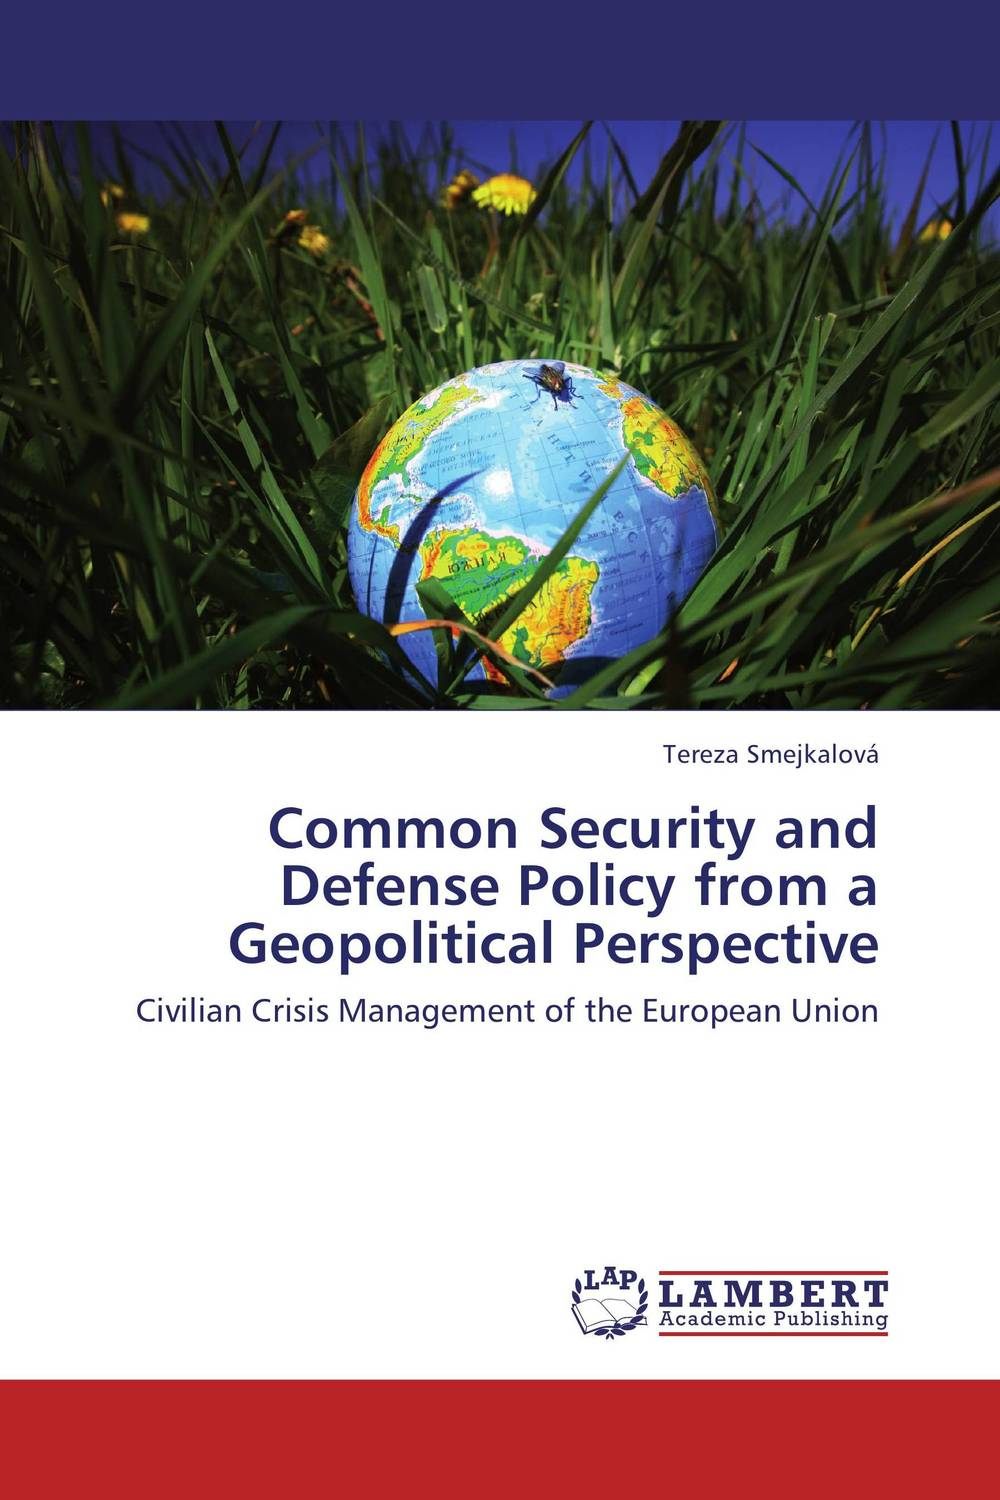 Common Security and Defense Policy from a Geopolitical Perspective julian di ridolfo nato and the european security and defense policy